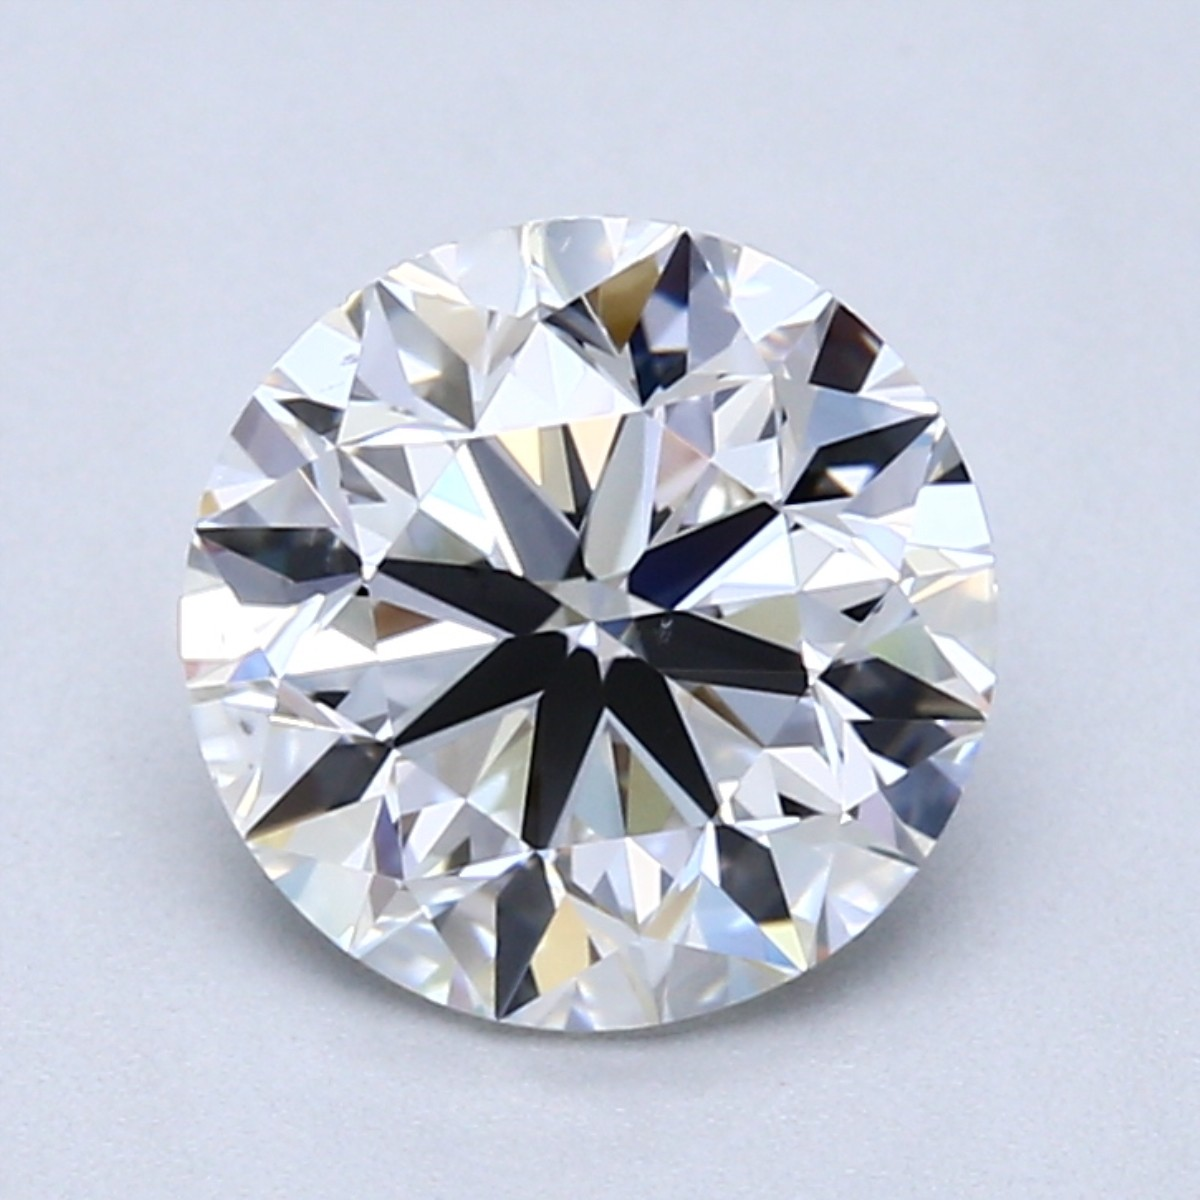 Round 2.0 Carat G Color VS2 Clarity For Sale